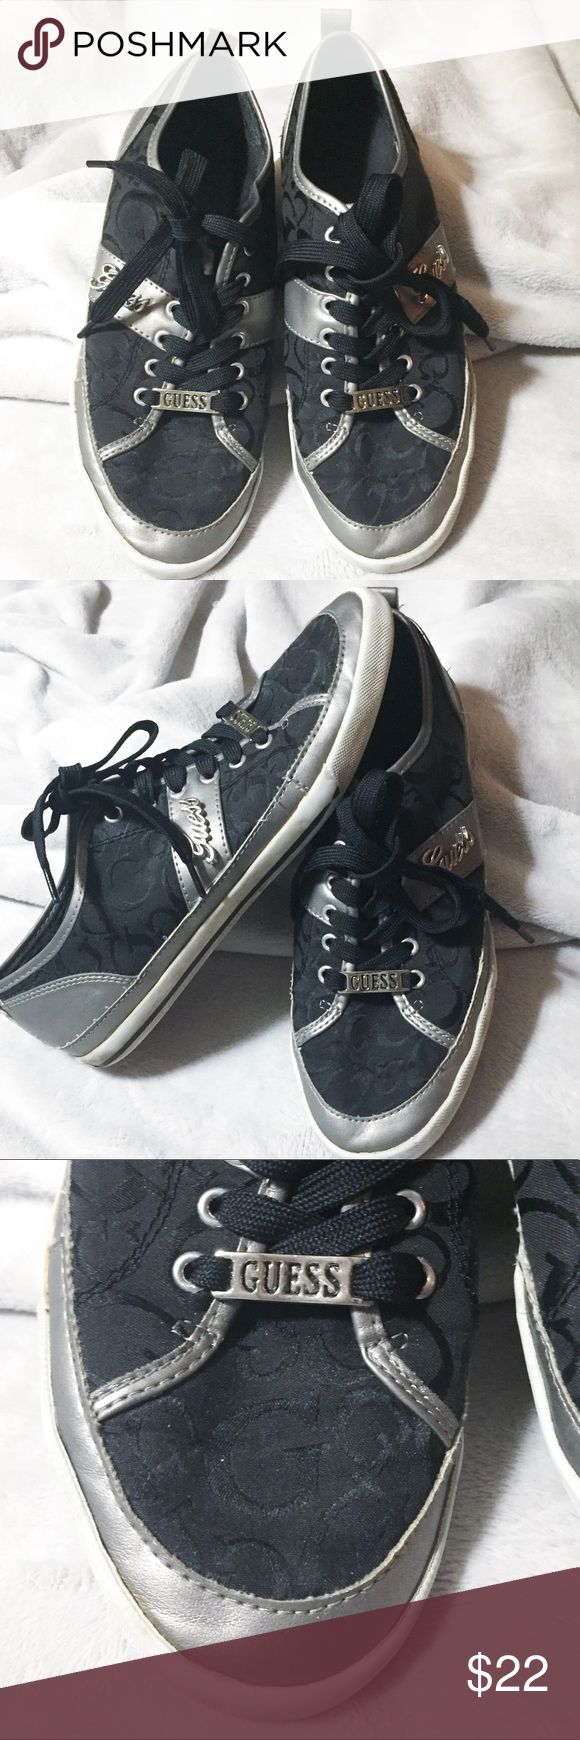 💎 Cute Guess sneakers. Black/Silver Sz 8.5💎 Gently worn Guess Shoes